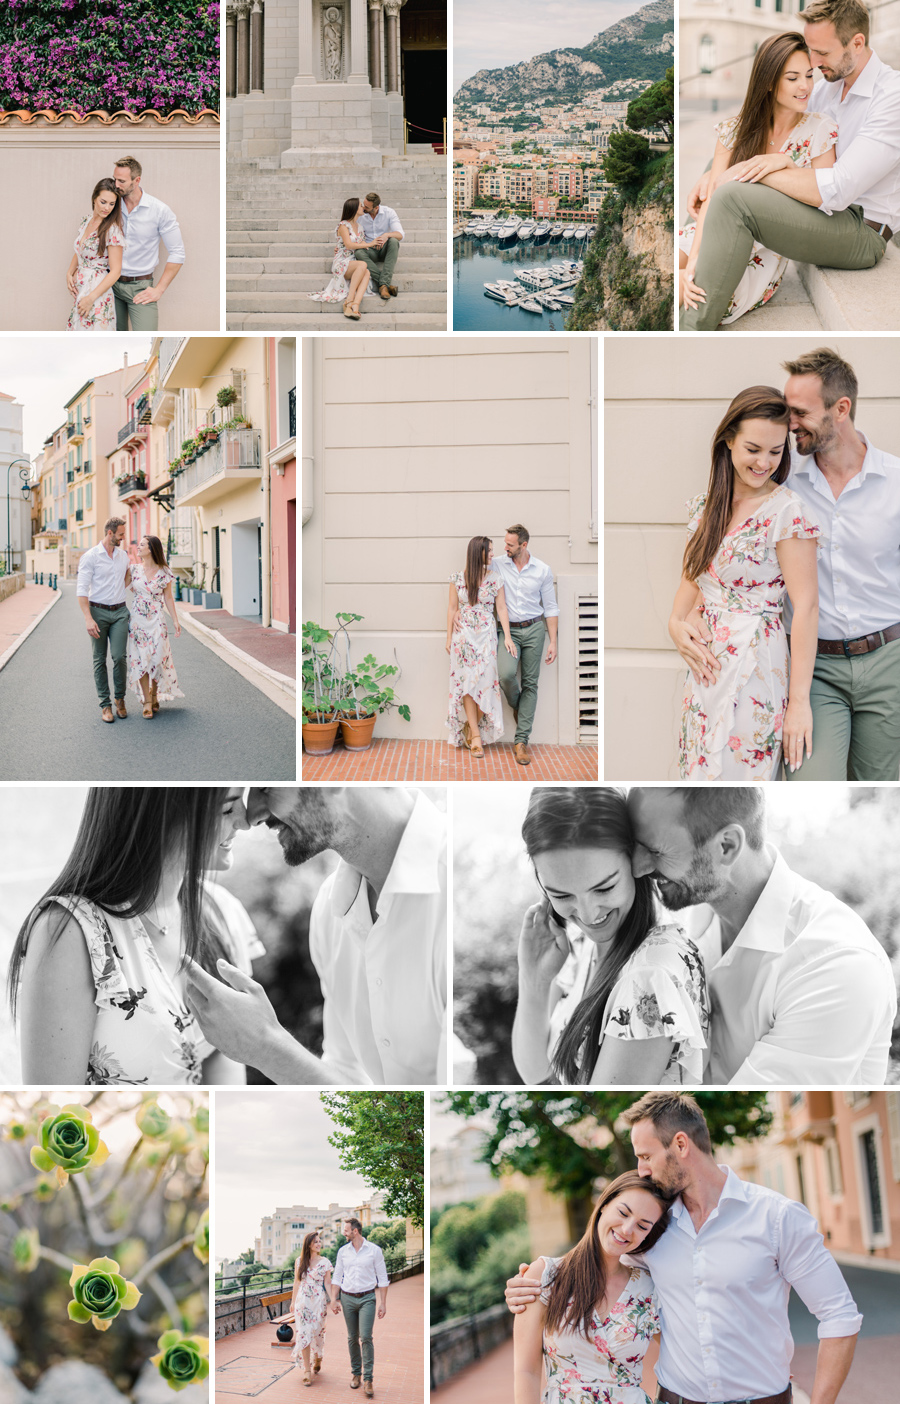 wedding engagement monaco le rocher montecarlo